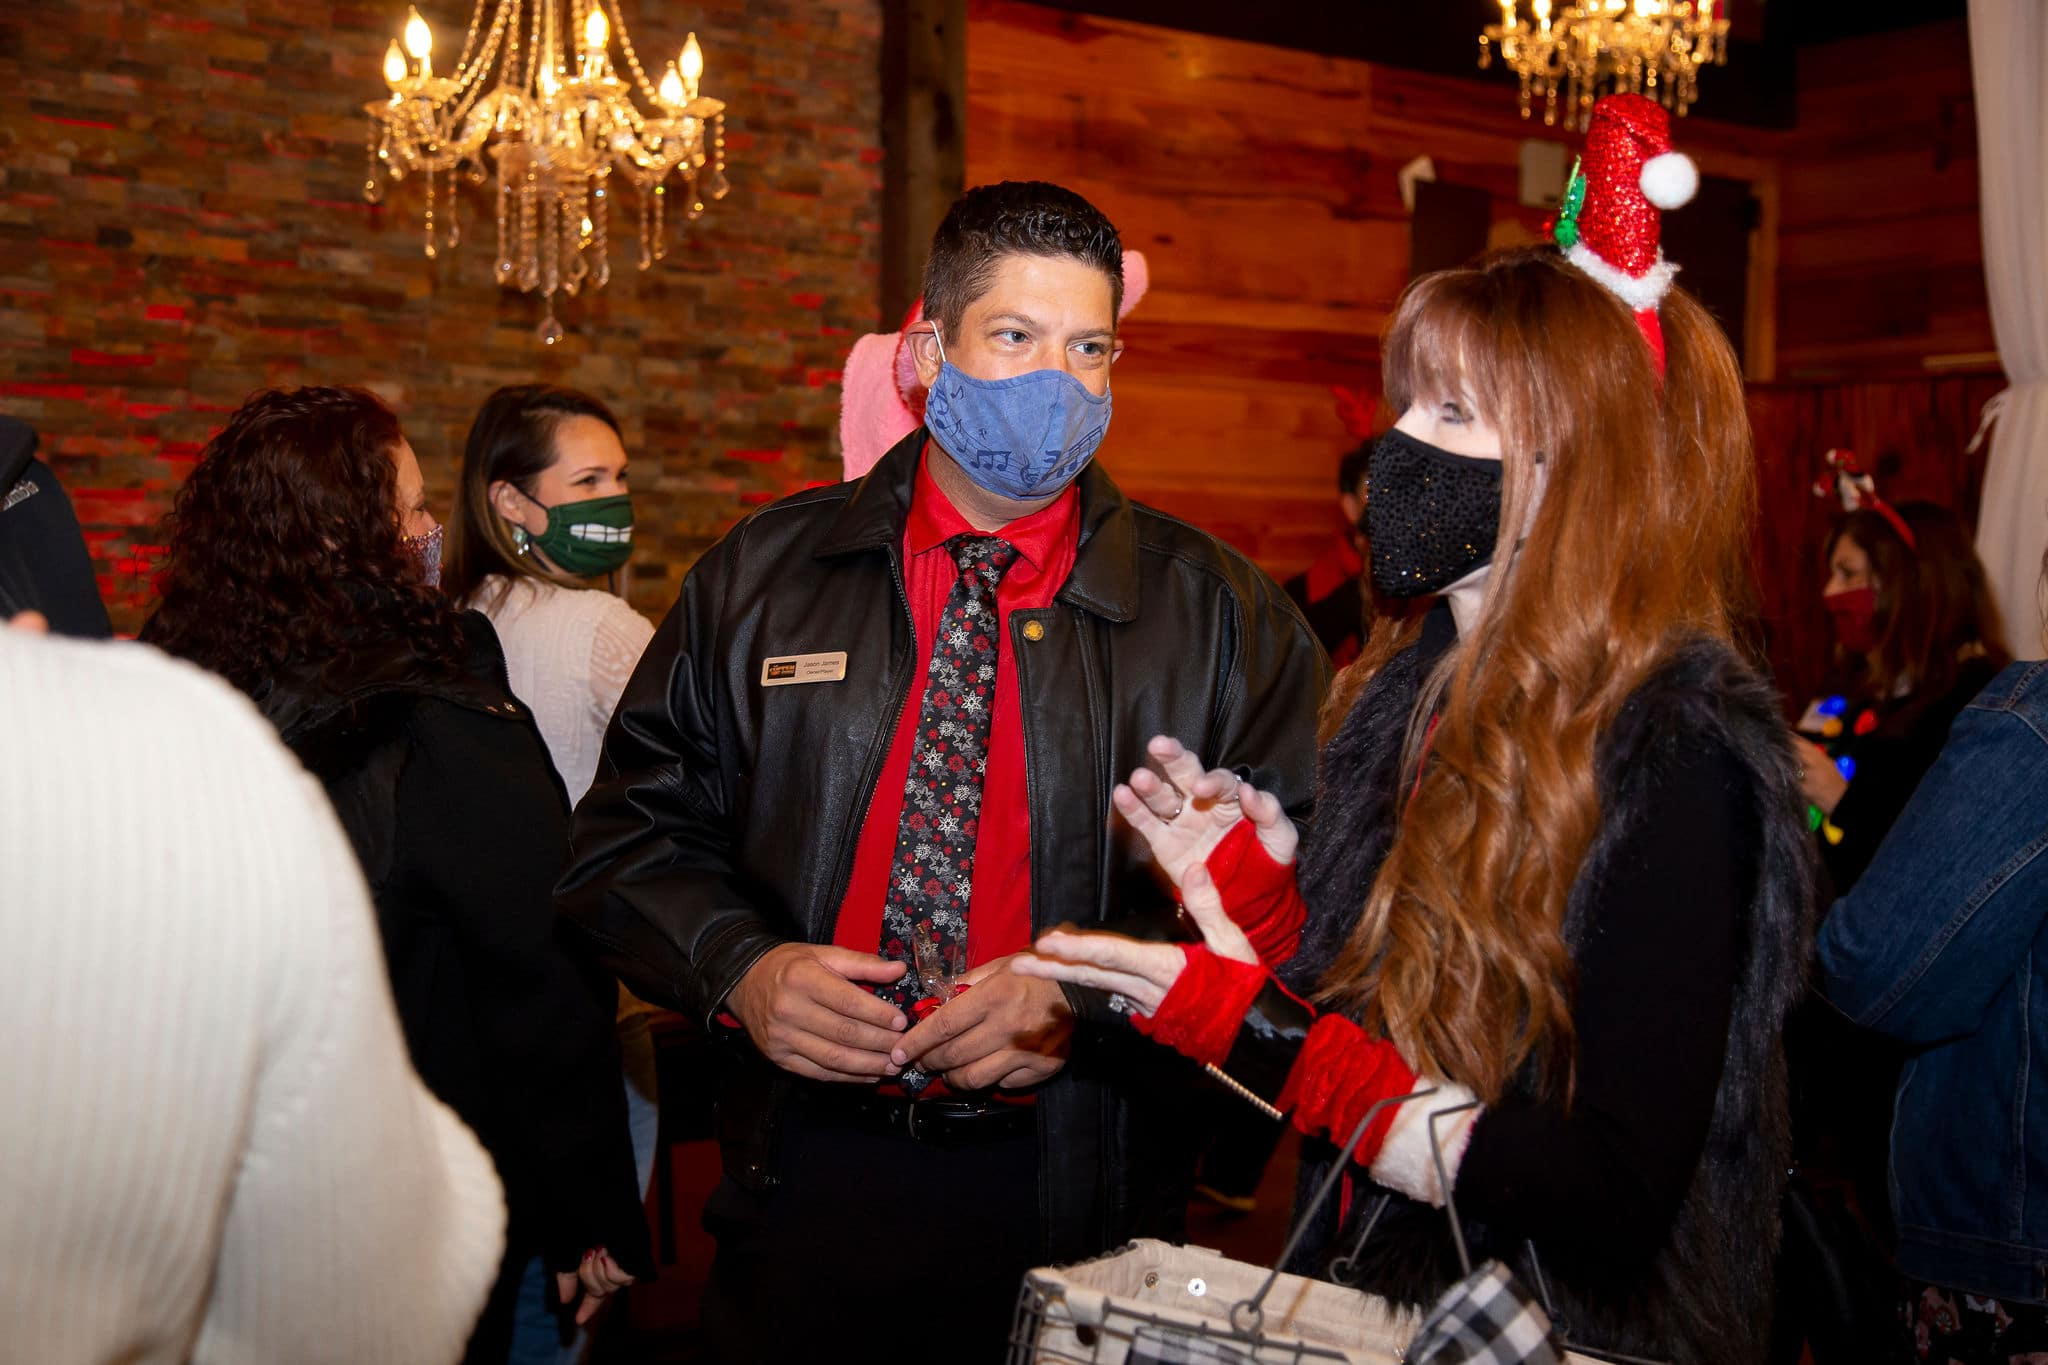 red haired woman wearing santa hat headband and santa-like gloves stands next to man wearing black jacket and red shirt with a holiday tie